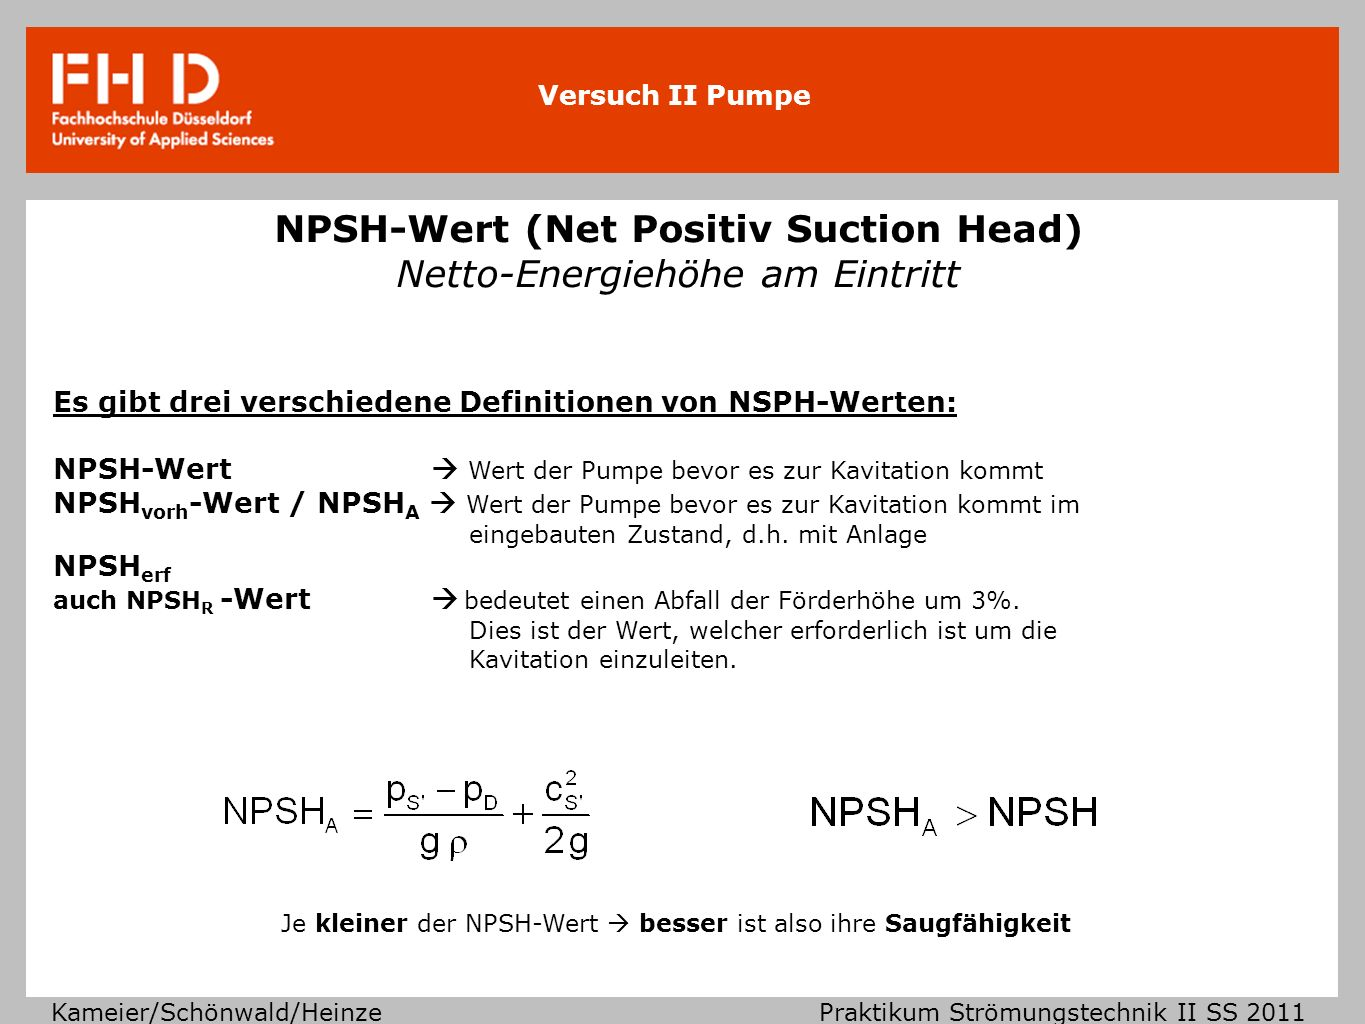 NPSH-Wert (Net Positiv Suction Head) Netto-Energiehöhe am Eintritt